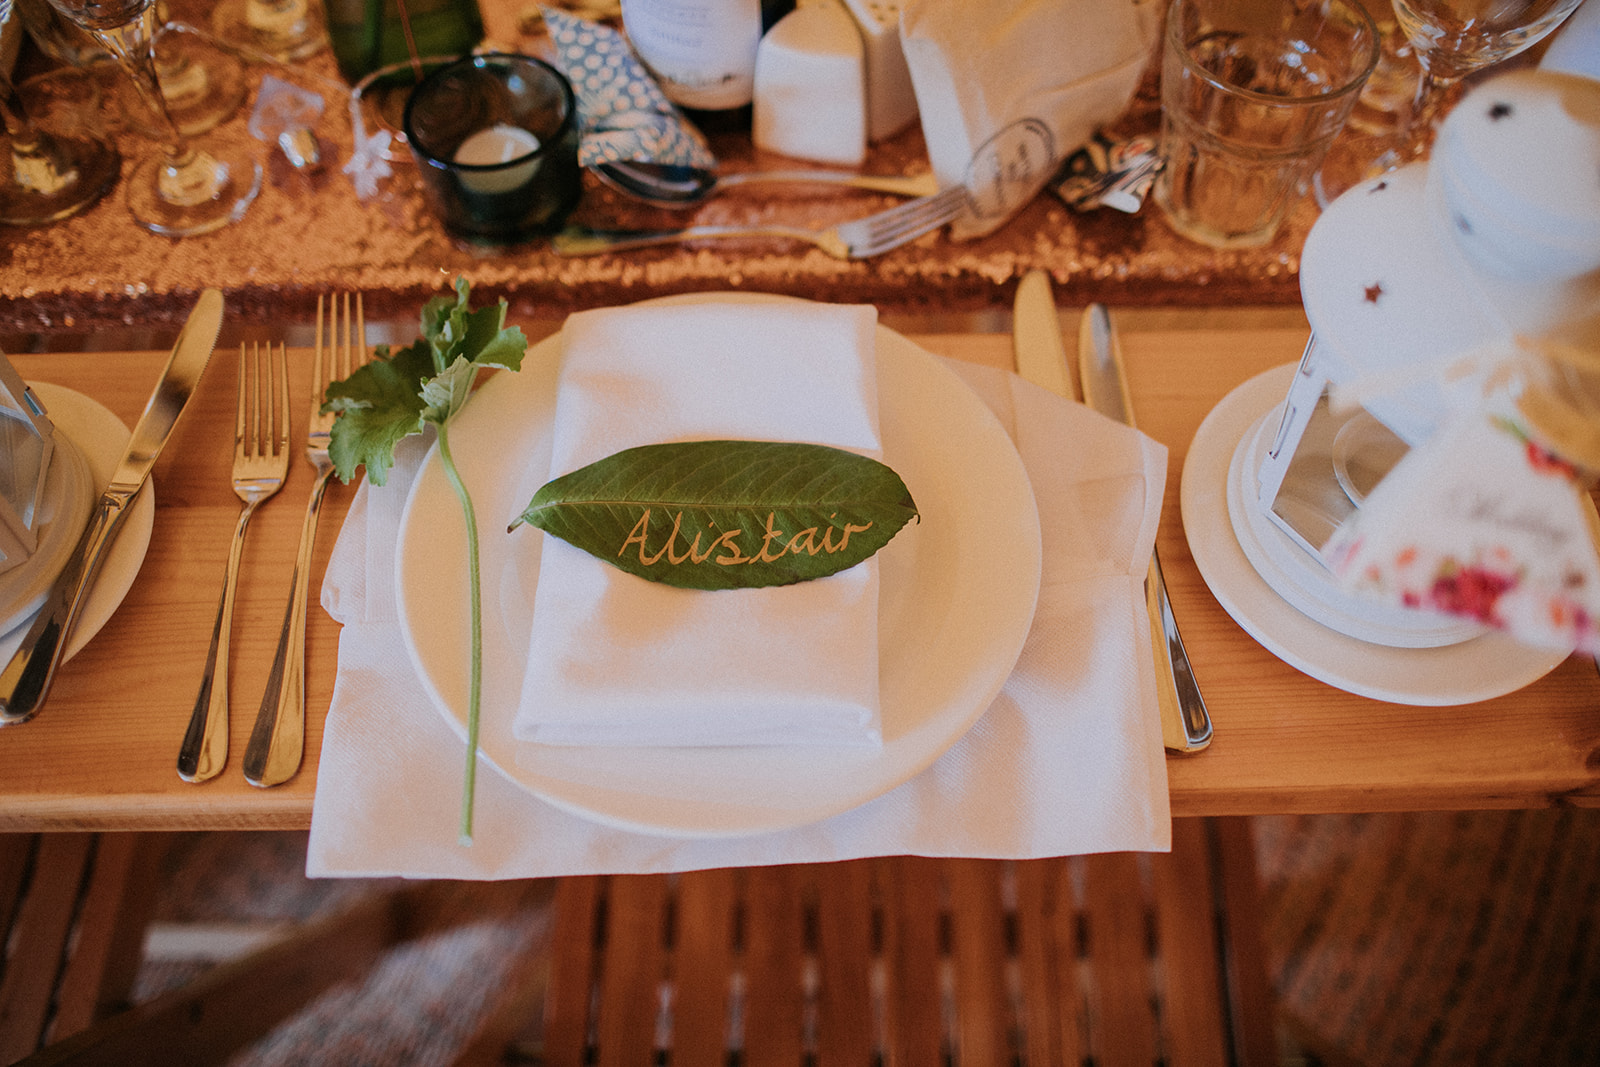 Hand written leaf as place name setting. Cattows Farm wedding with sami tipi